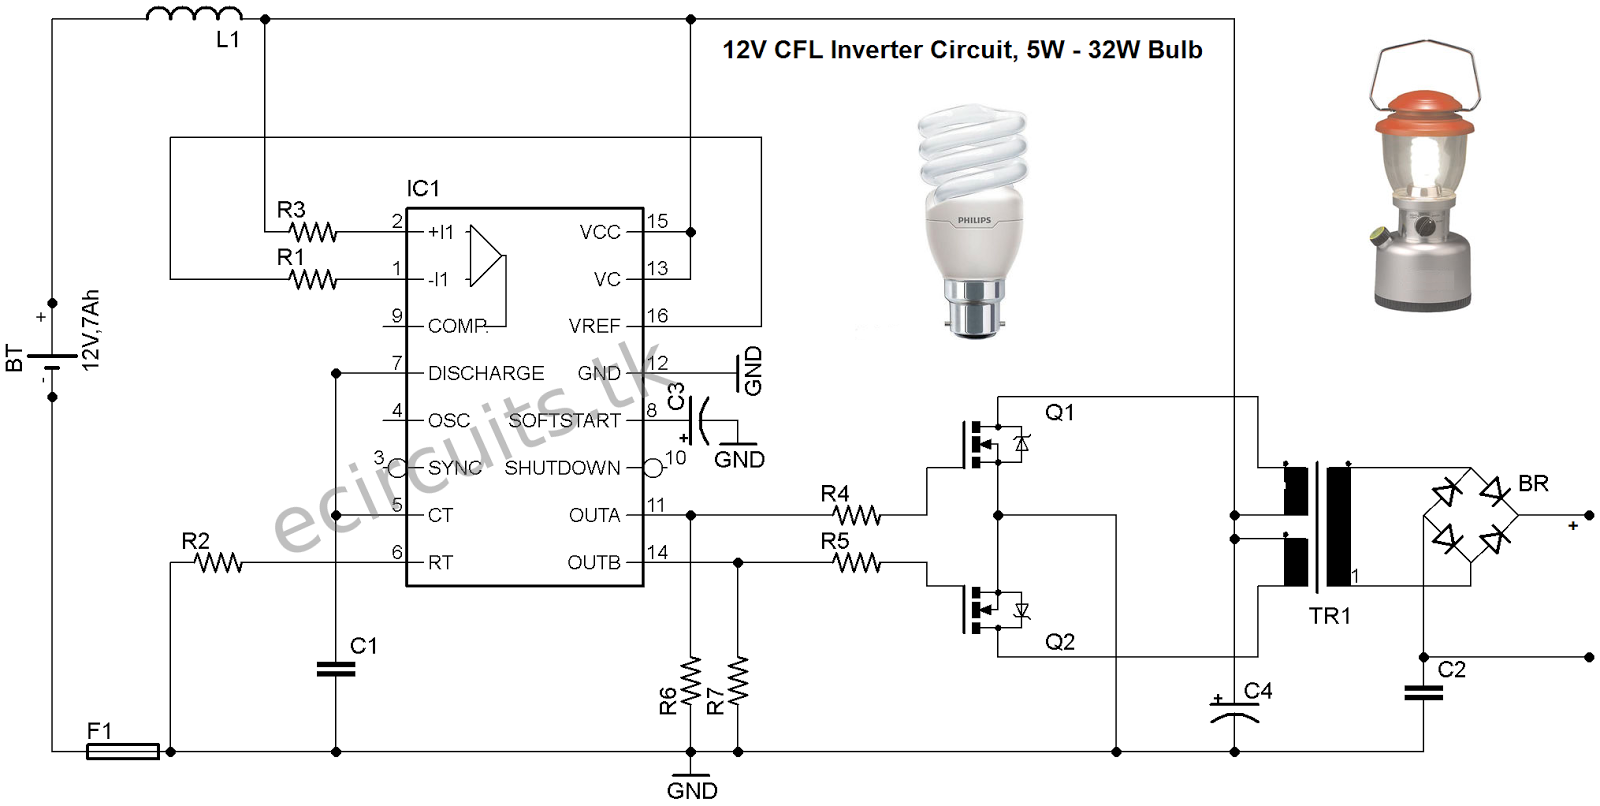 12v cfl emergency light circuit using 3525 ic mini inverter rh simplecircuitsprojects blogspot com inverter circuit diagram 12v 500w pdf inverter circuit diagram 12v to 220v 100w